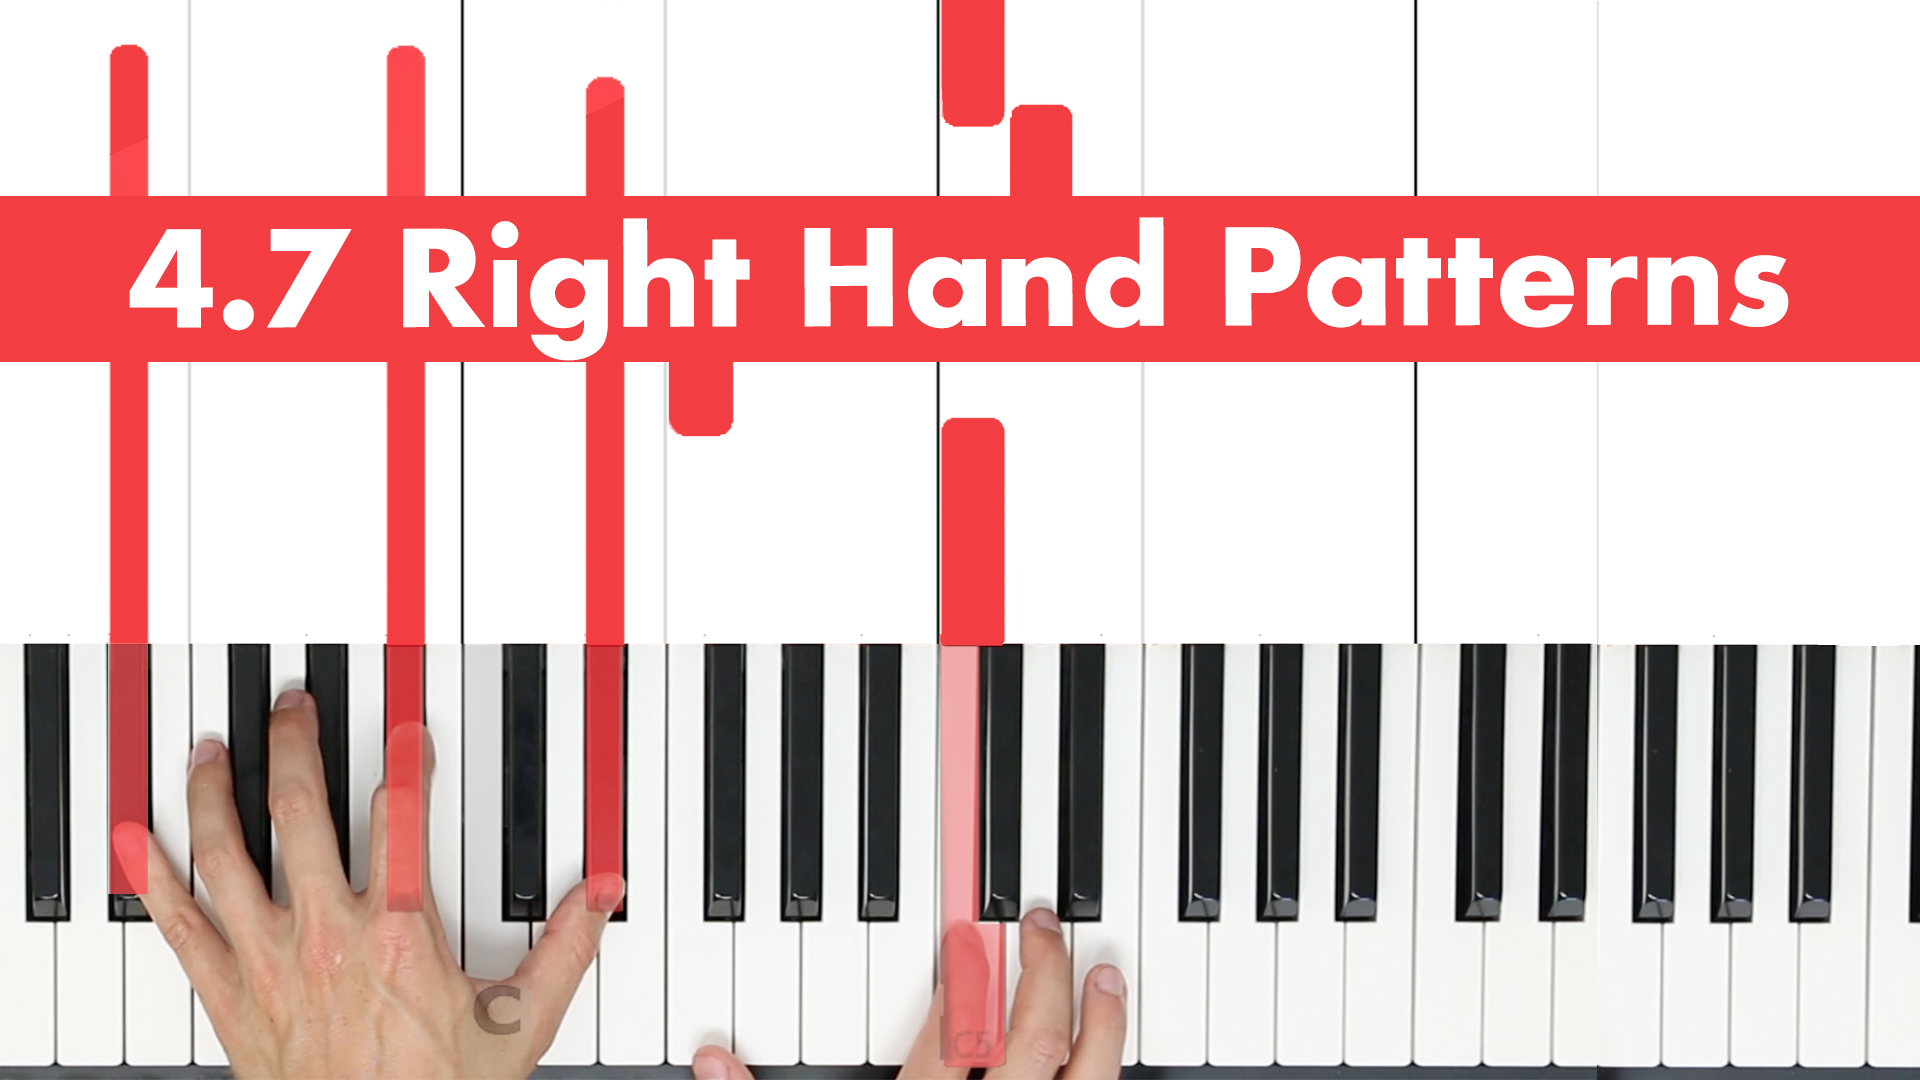 4.7 Right Hand Patterns